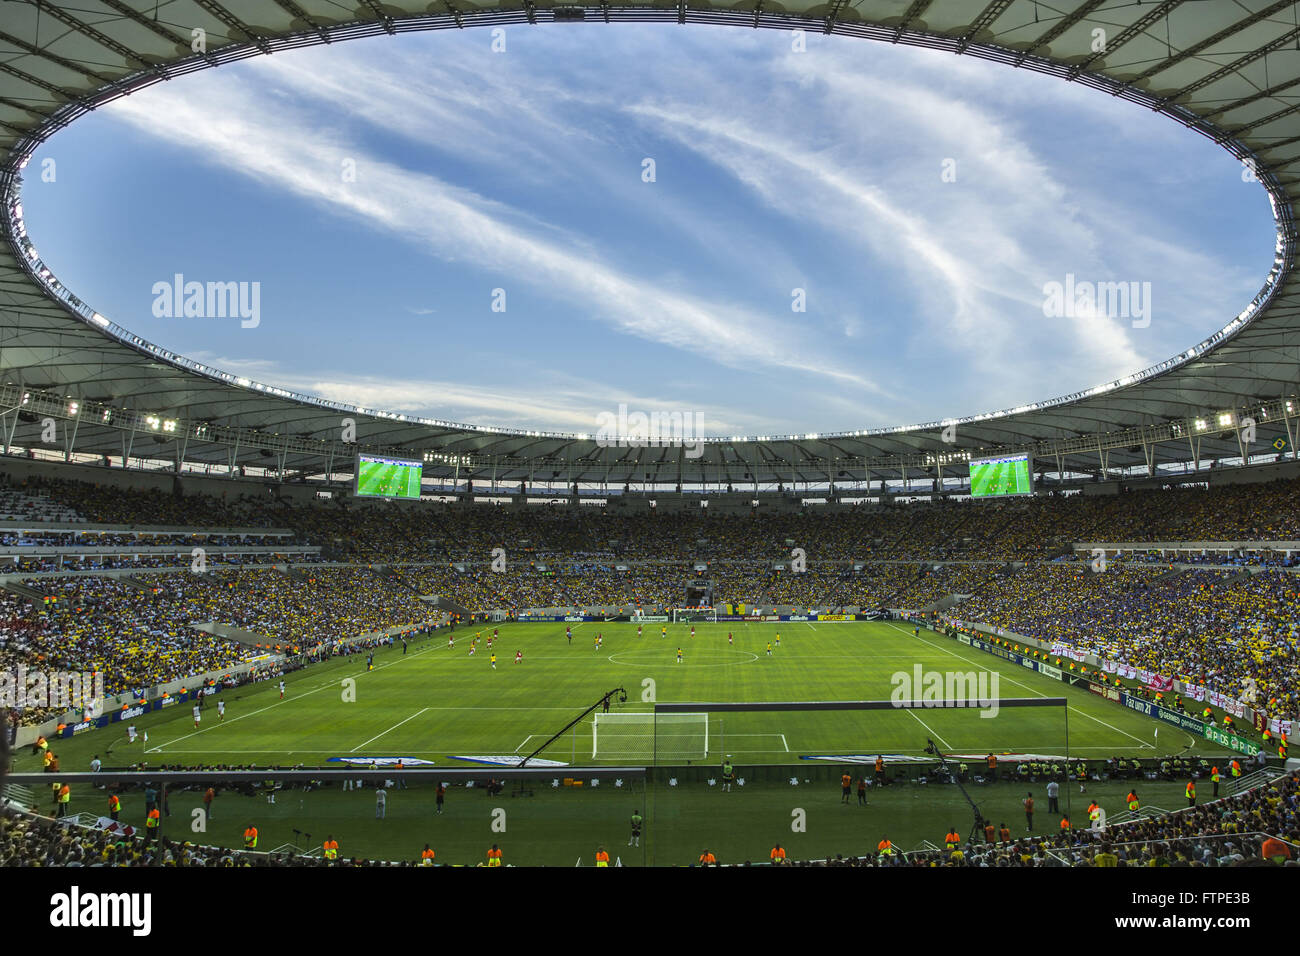 Reopening the Estadio do Maracana with friendly match between the national teams of Brazil and England - Stock Image